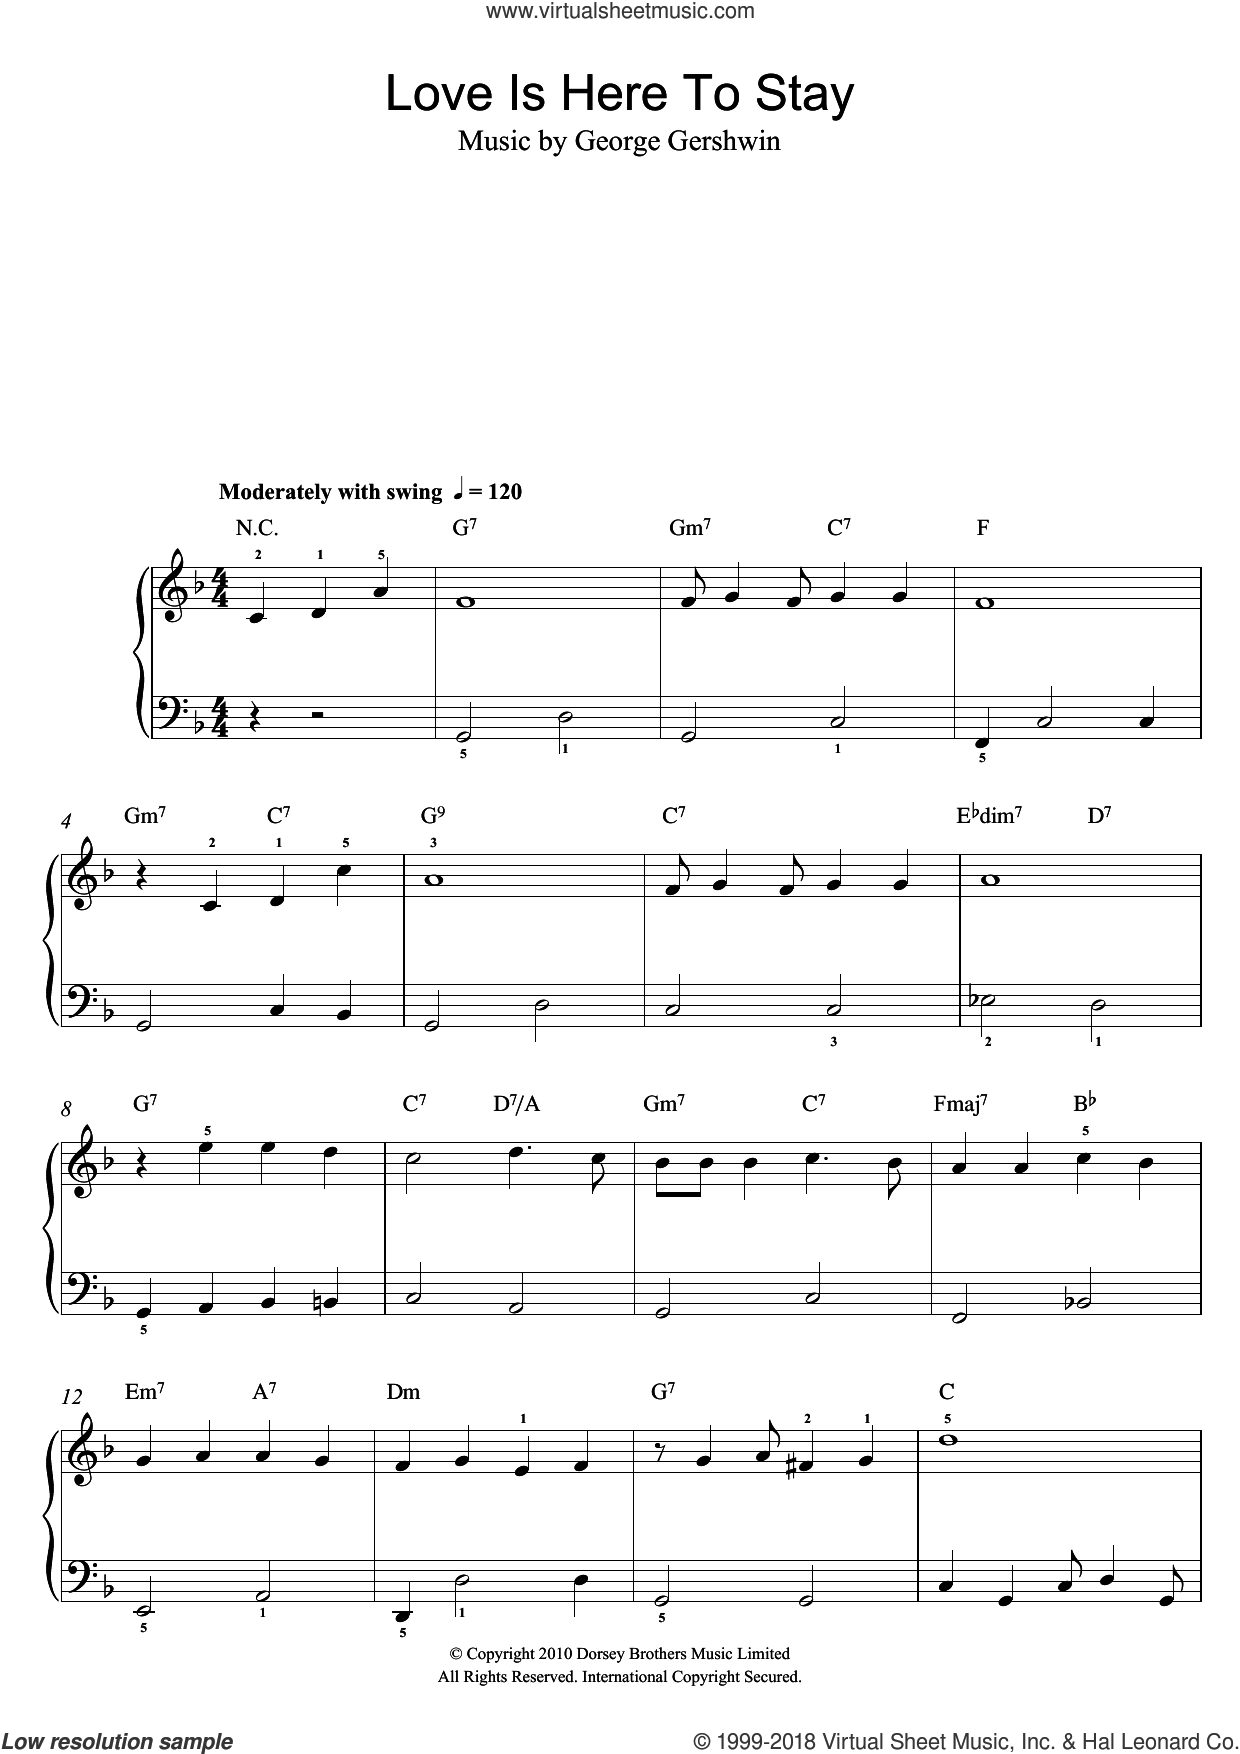 Love Is Here To Stay, (easy) sheet music for piano solo by George Gershwin, easy